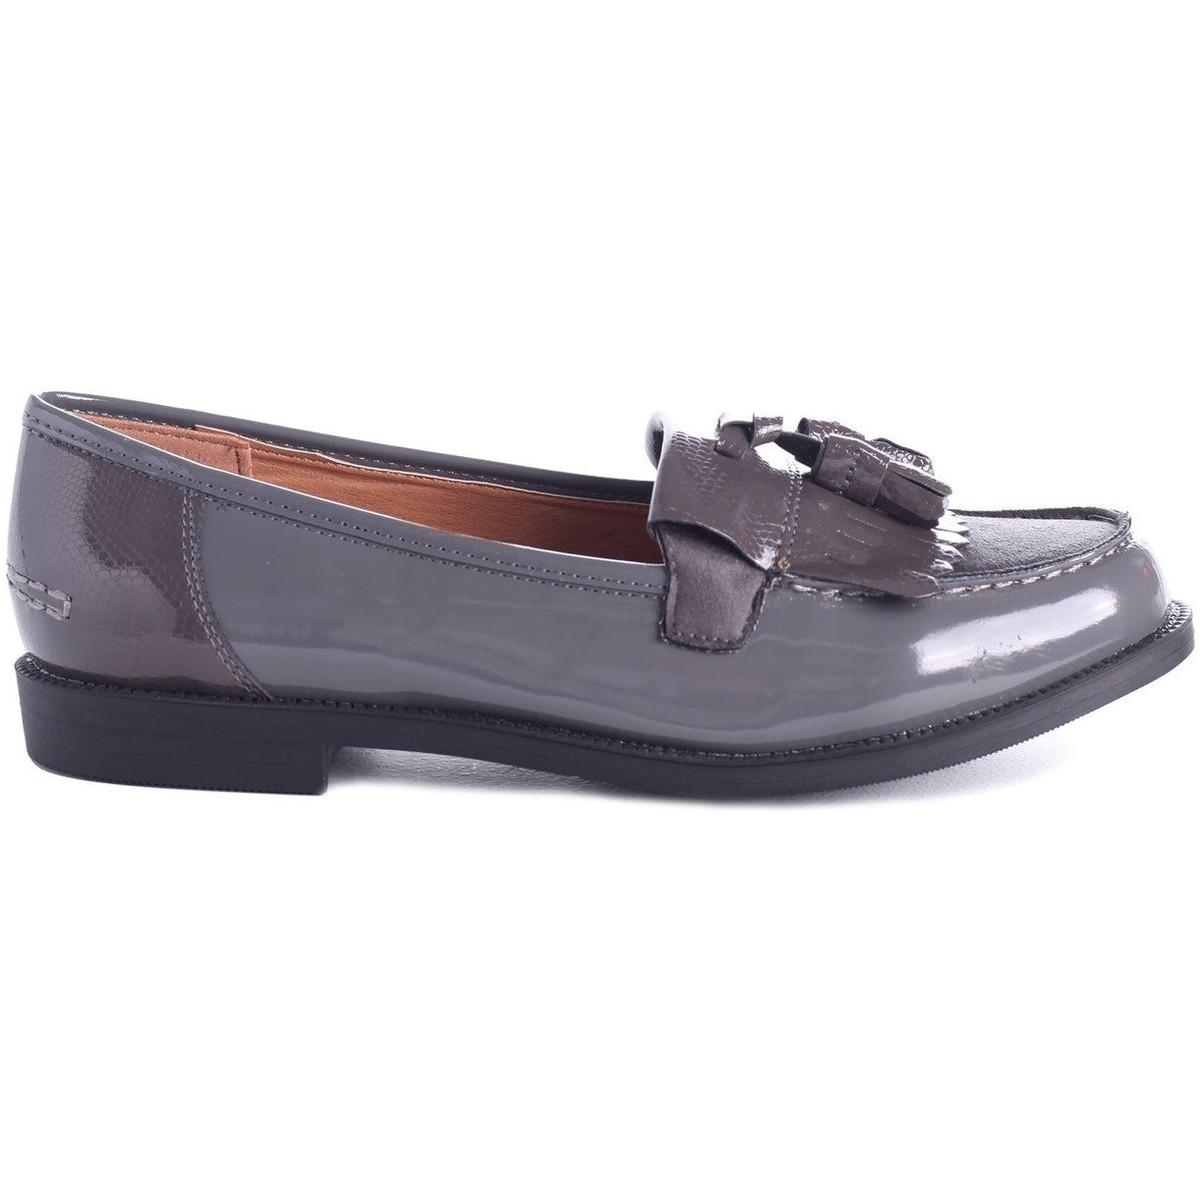 332a83f1704 Linzi Rosemary Women s Shoes (pumps   Ballerinas) In Grey in Gray - Lyst